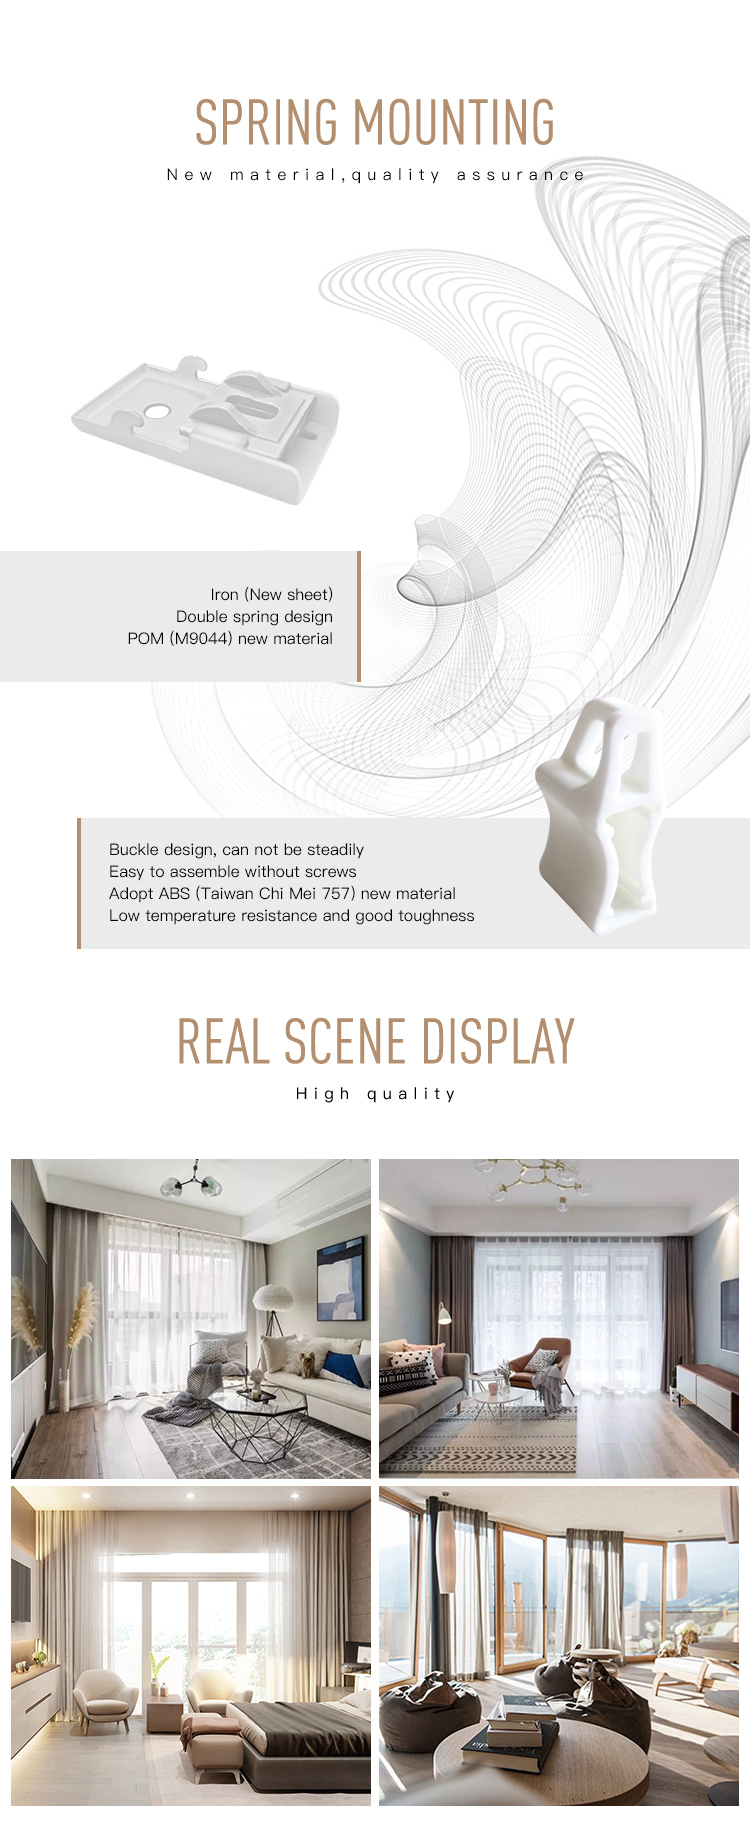 Ceiling mount hotel flexible curtain track swivel gliders plastic curved bendable curtain track for window curtains